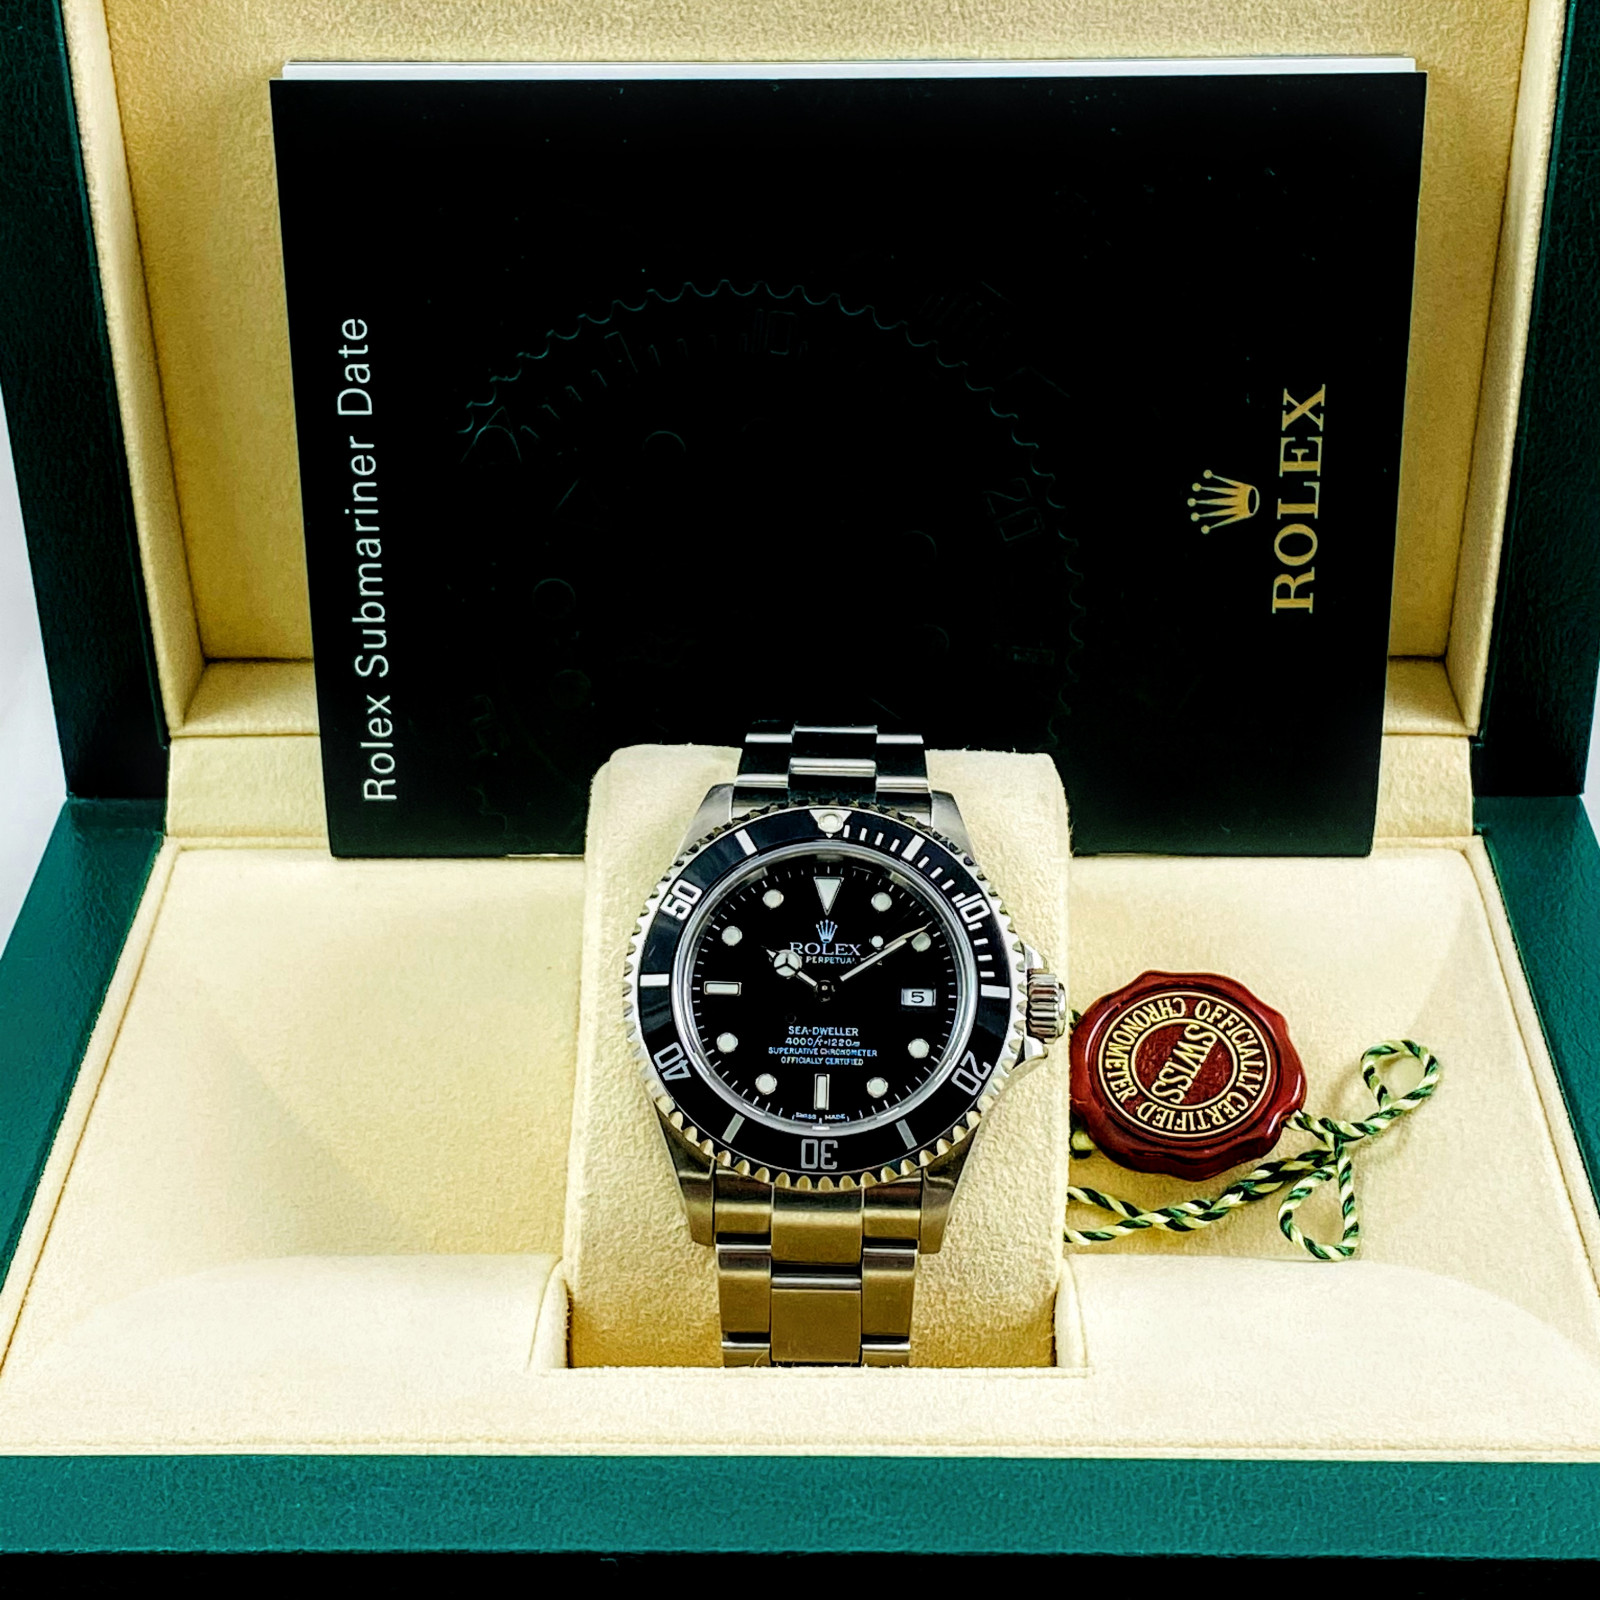 Rolex Oyster Perpetual Sea-Dweller 16600 Steel Year 2003